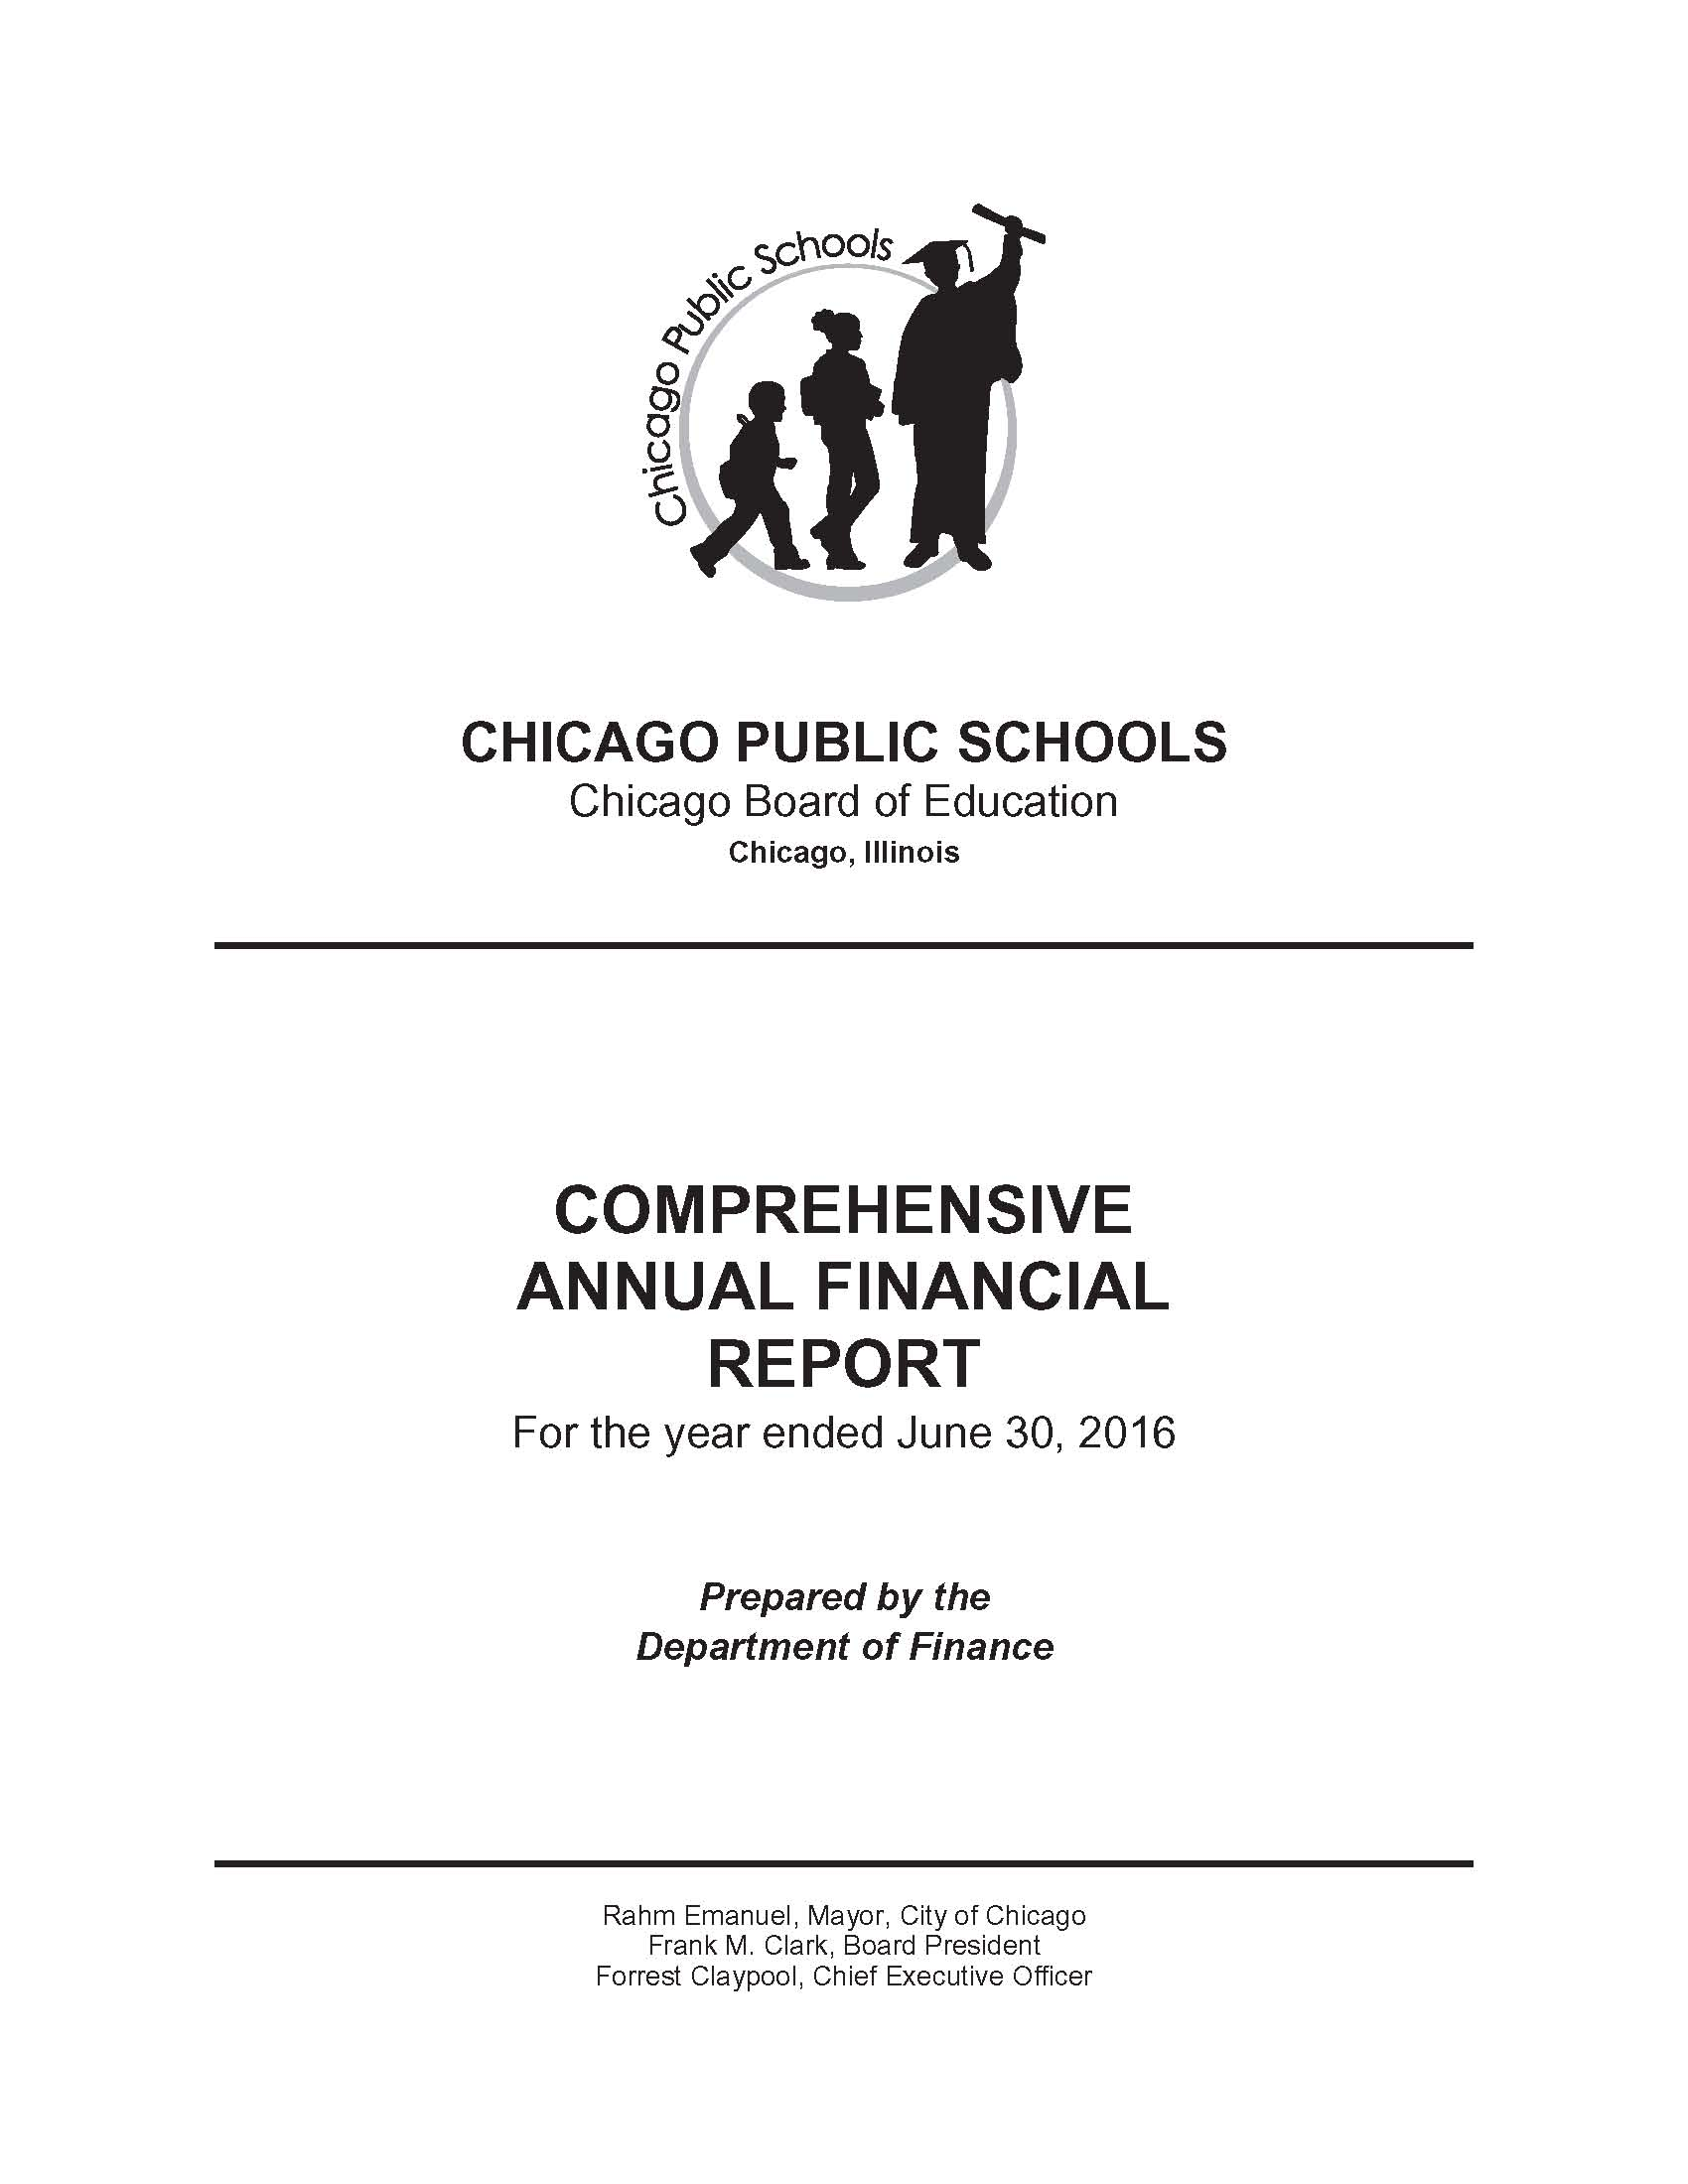 The most detailed and accurate financial report from CPS is the annual CAFR. The FY 2016 CAFR was released to the public in January 2017, but as of March 2017 the leadership of the Chicago Teachers Union, while complaining about the latest pay cuts being imposed on the union's members (via